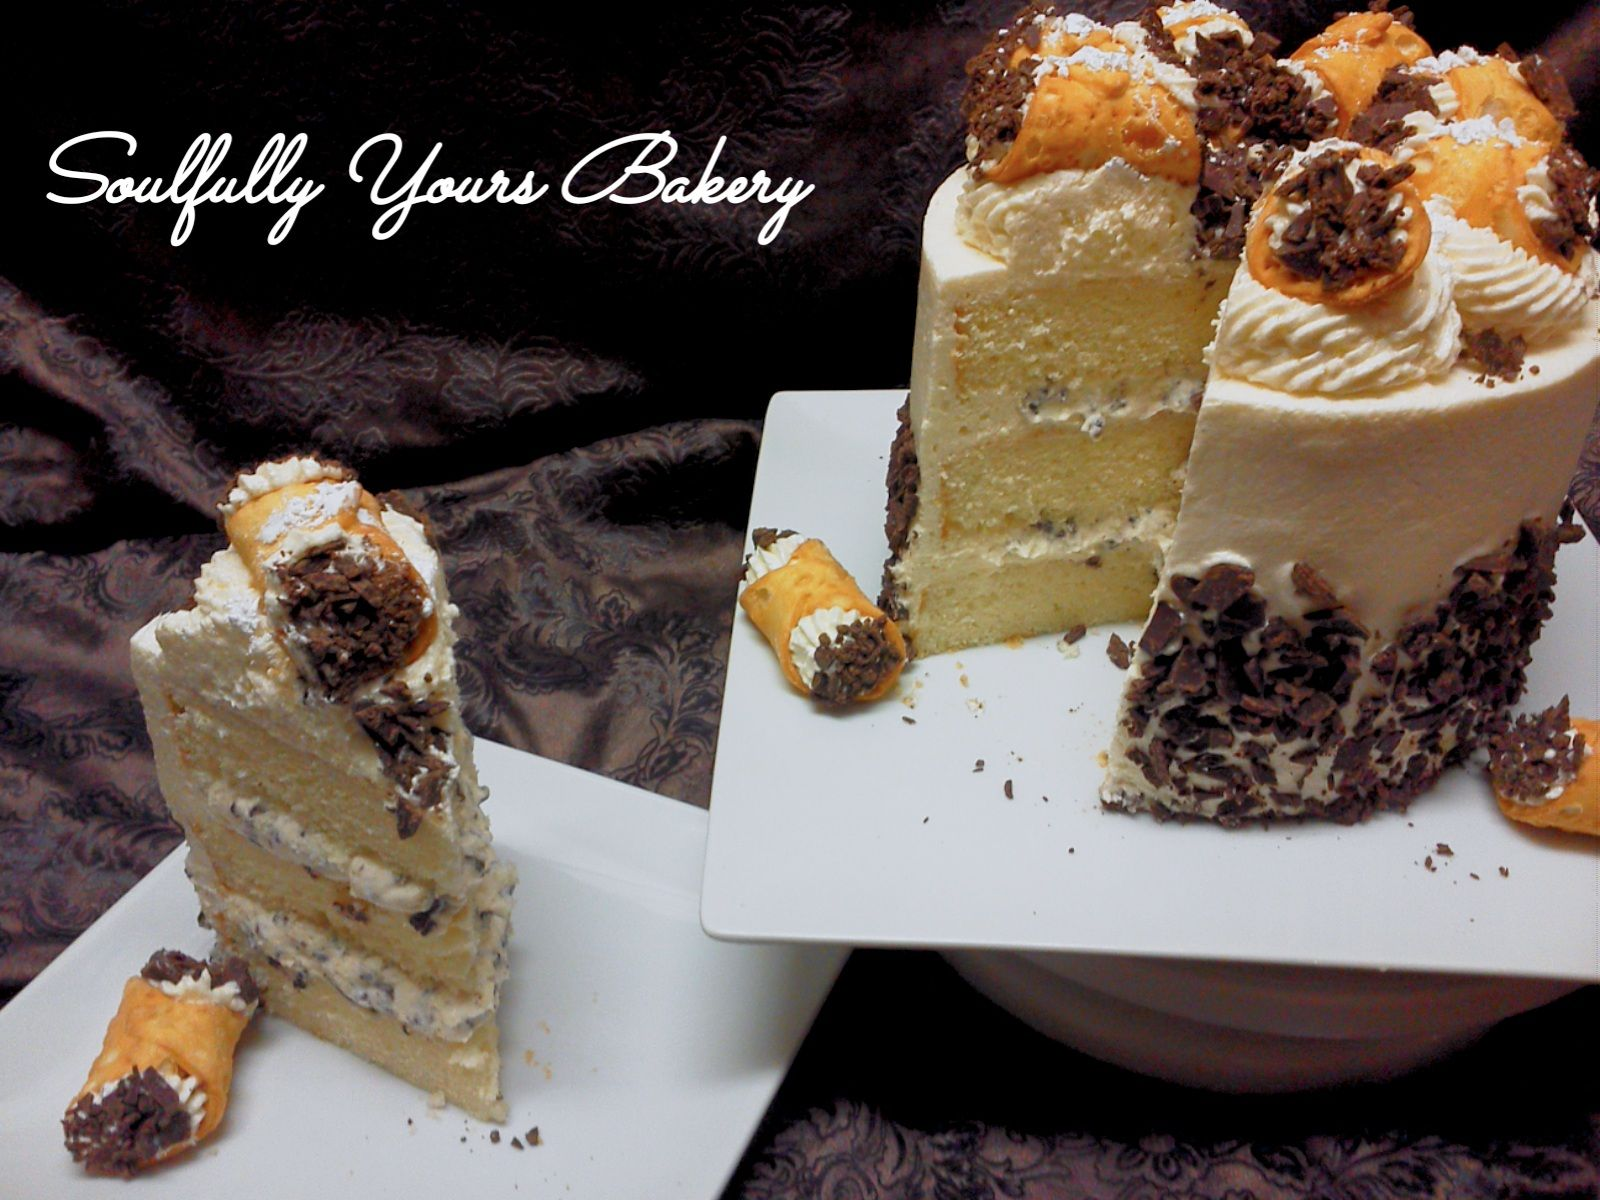 Shop Online For The Best Gifts At Soulfullyyoursonlinebakery We Ship Free Nationwide Guaranteed Christmas Delivery